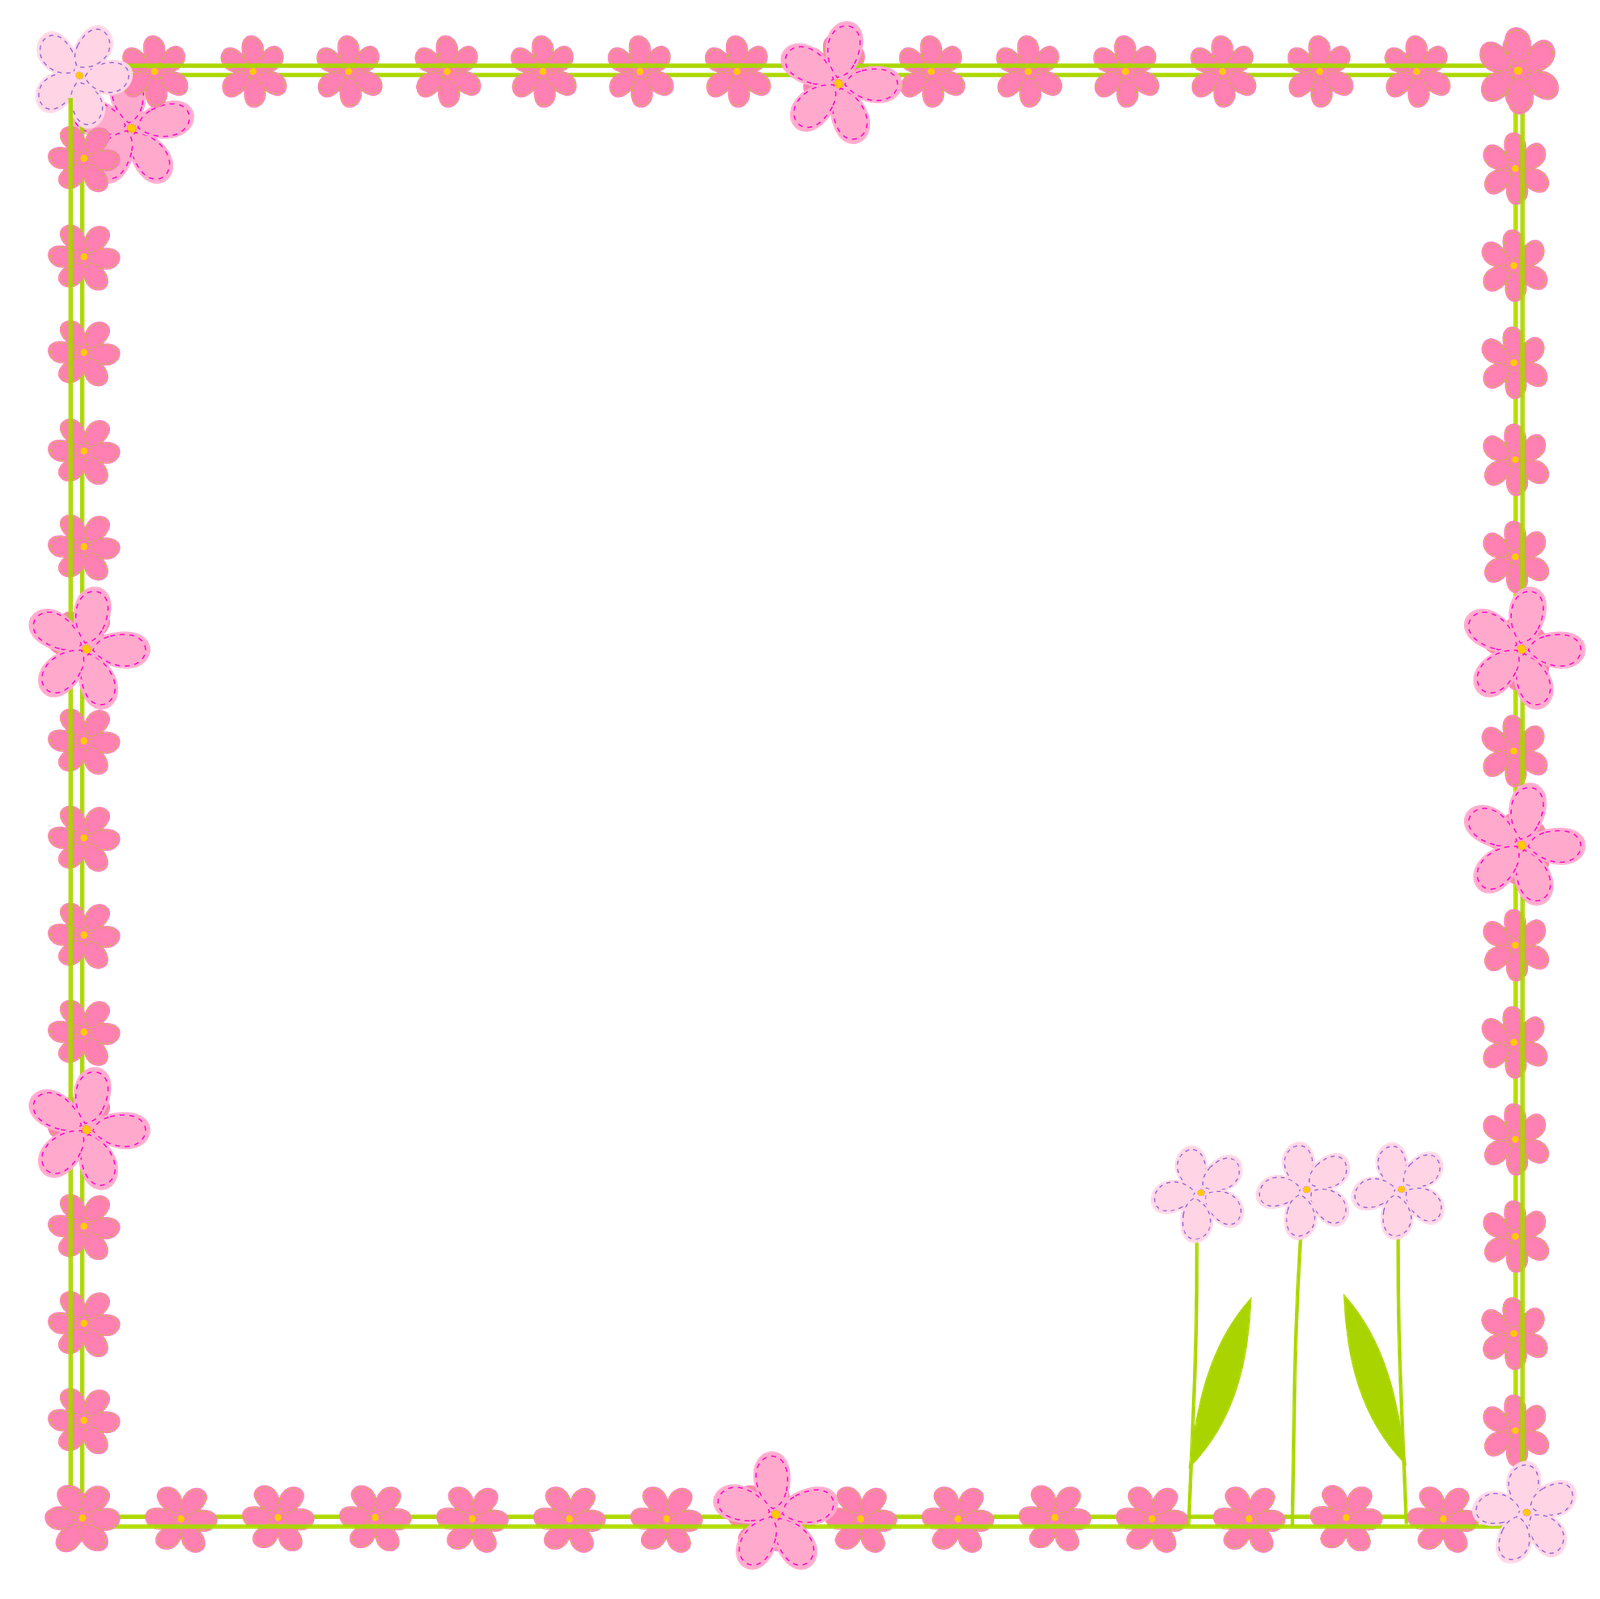 picture free download Digital border scrapbooking elements. Free flower borders clipart